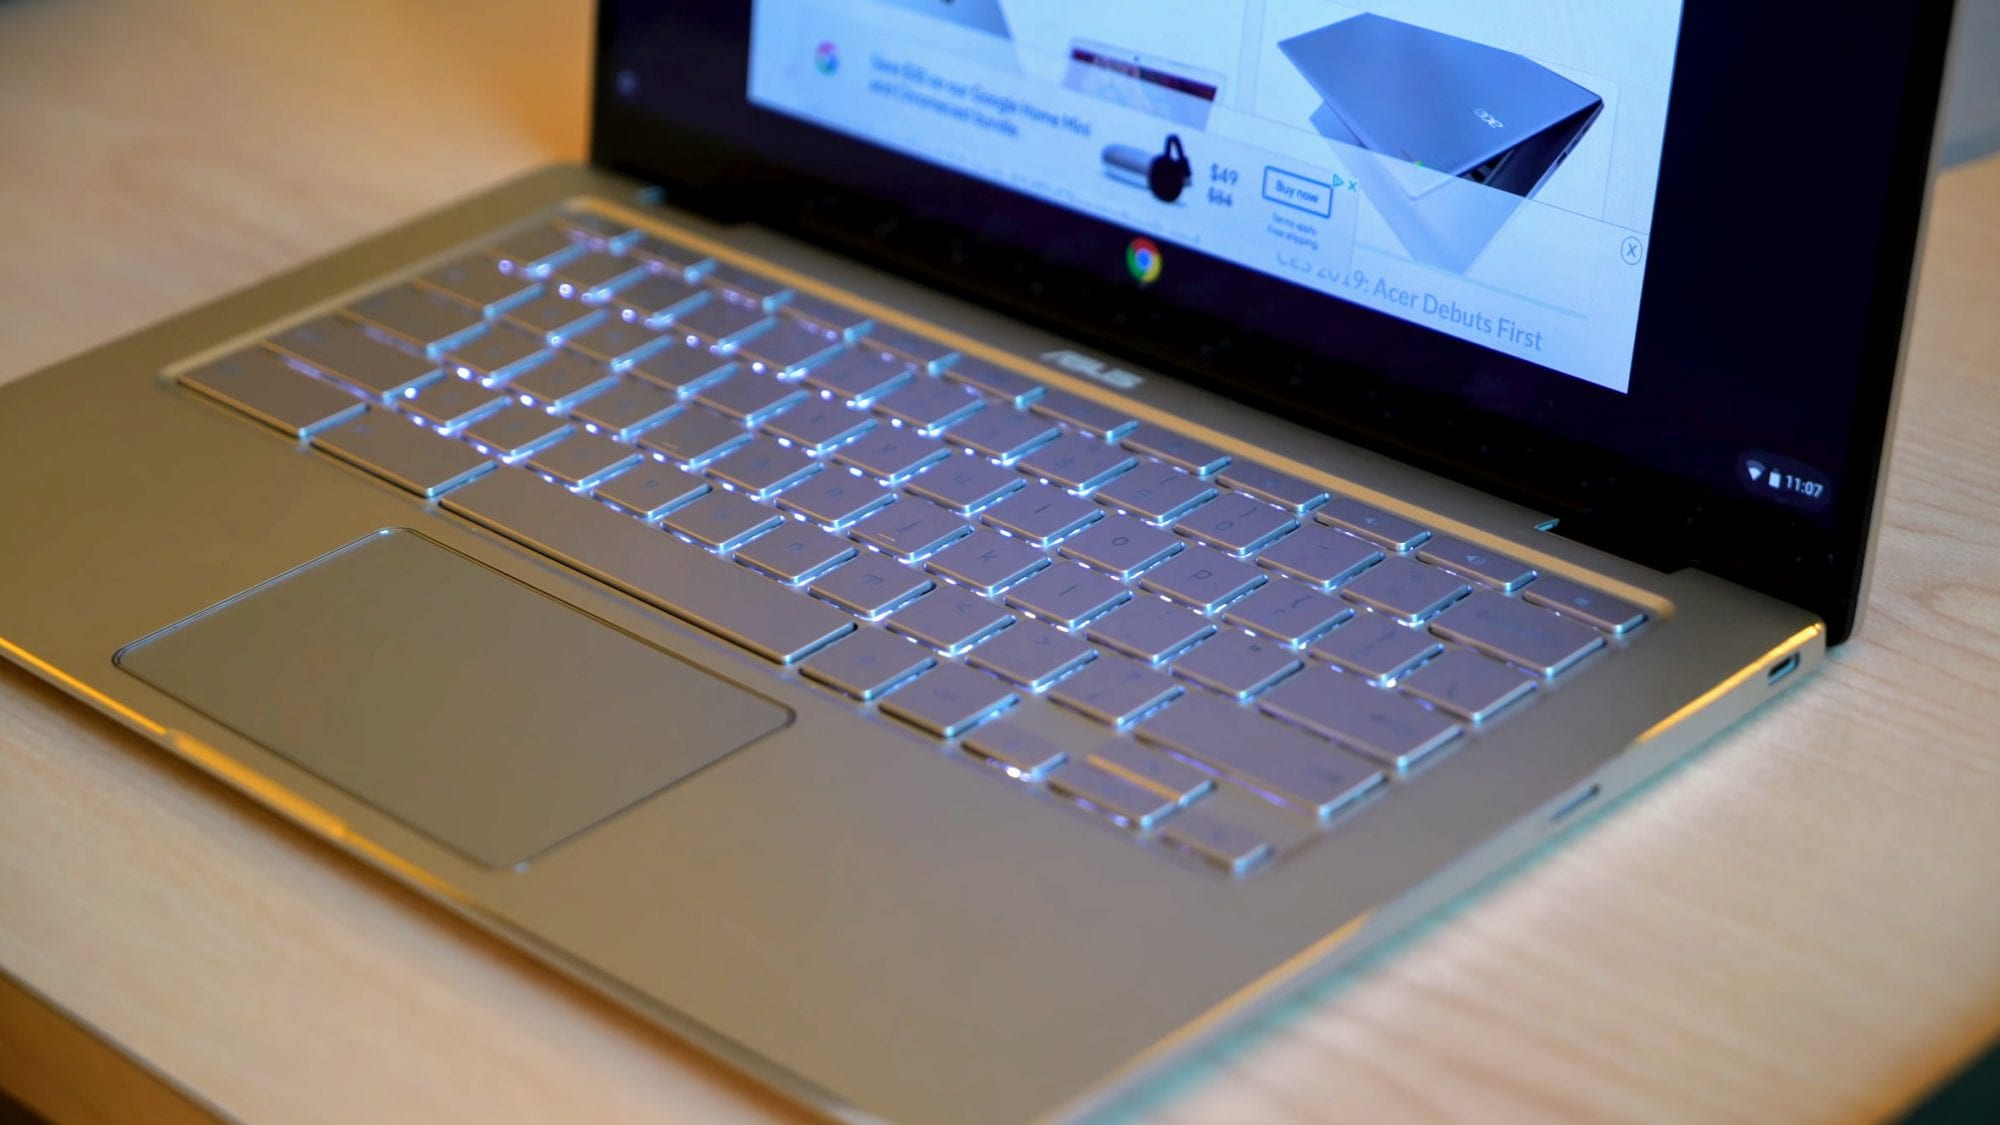 ASUS Chromebook C434 Shows Up In Amazon UK Listing